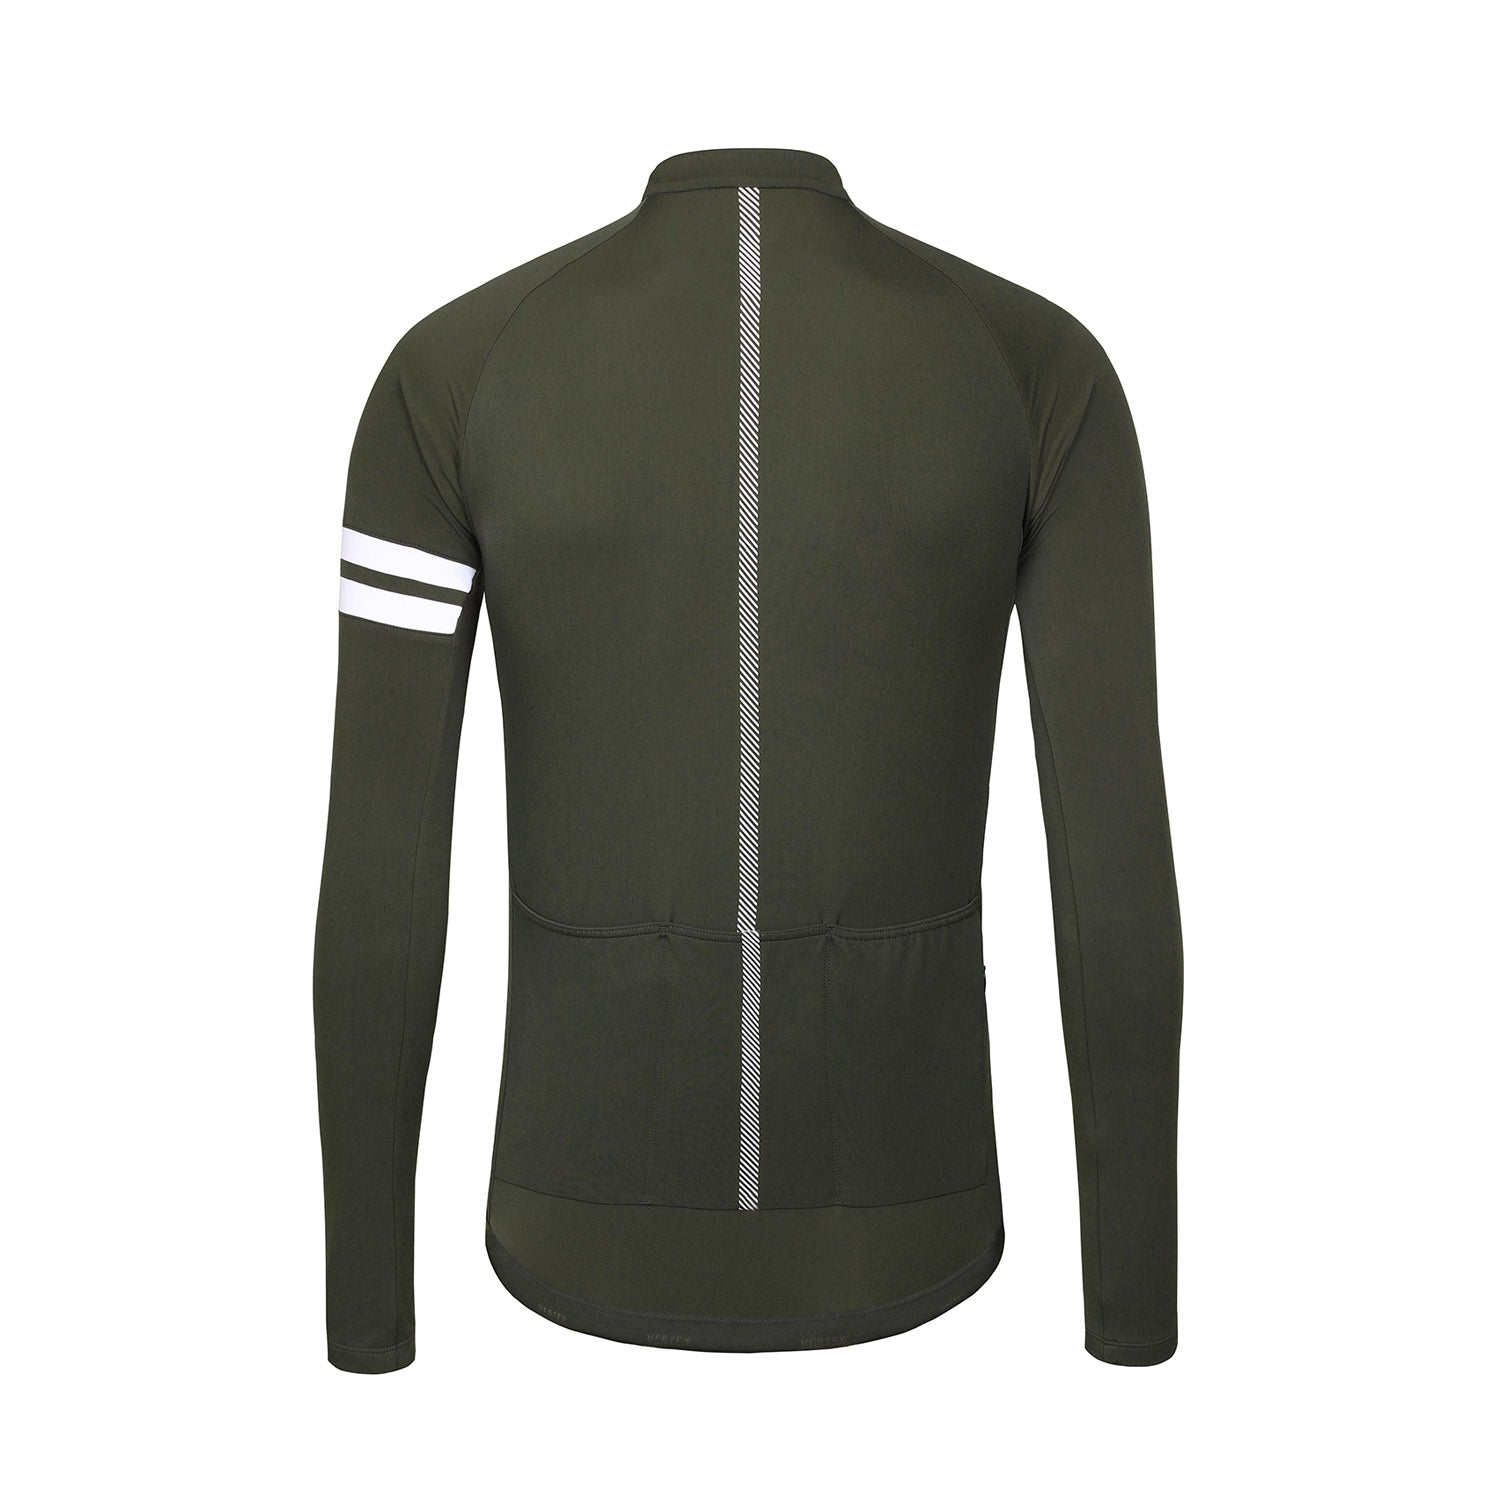 Team Winter Long Sleeve Jersey / Limited Edition